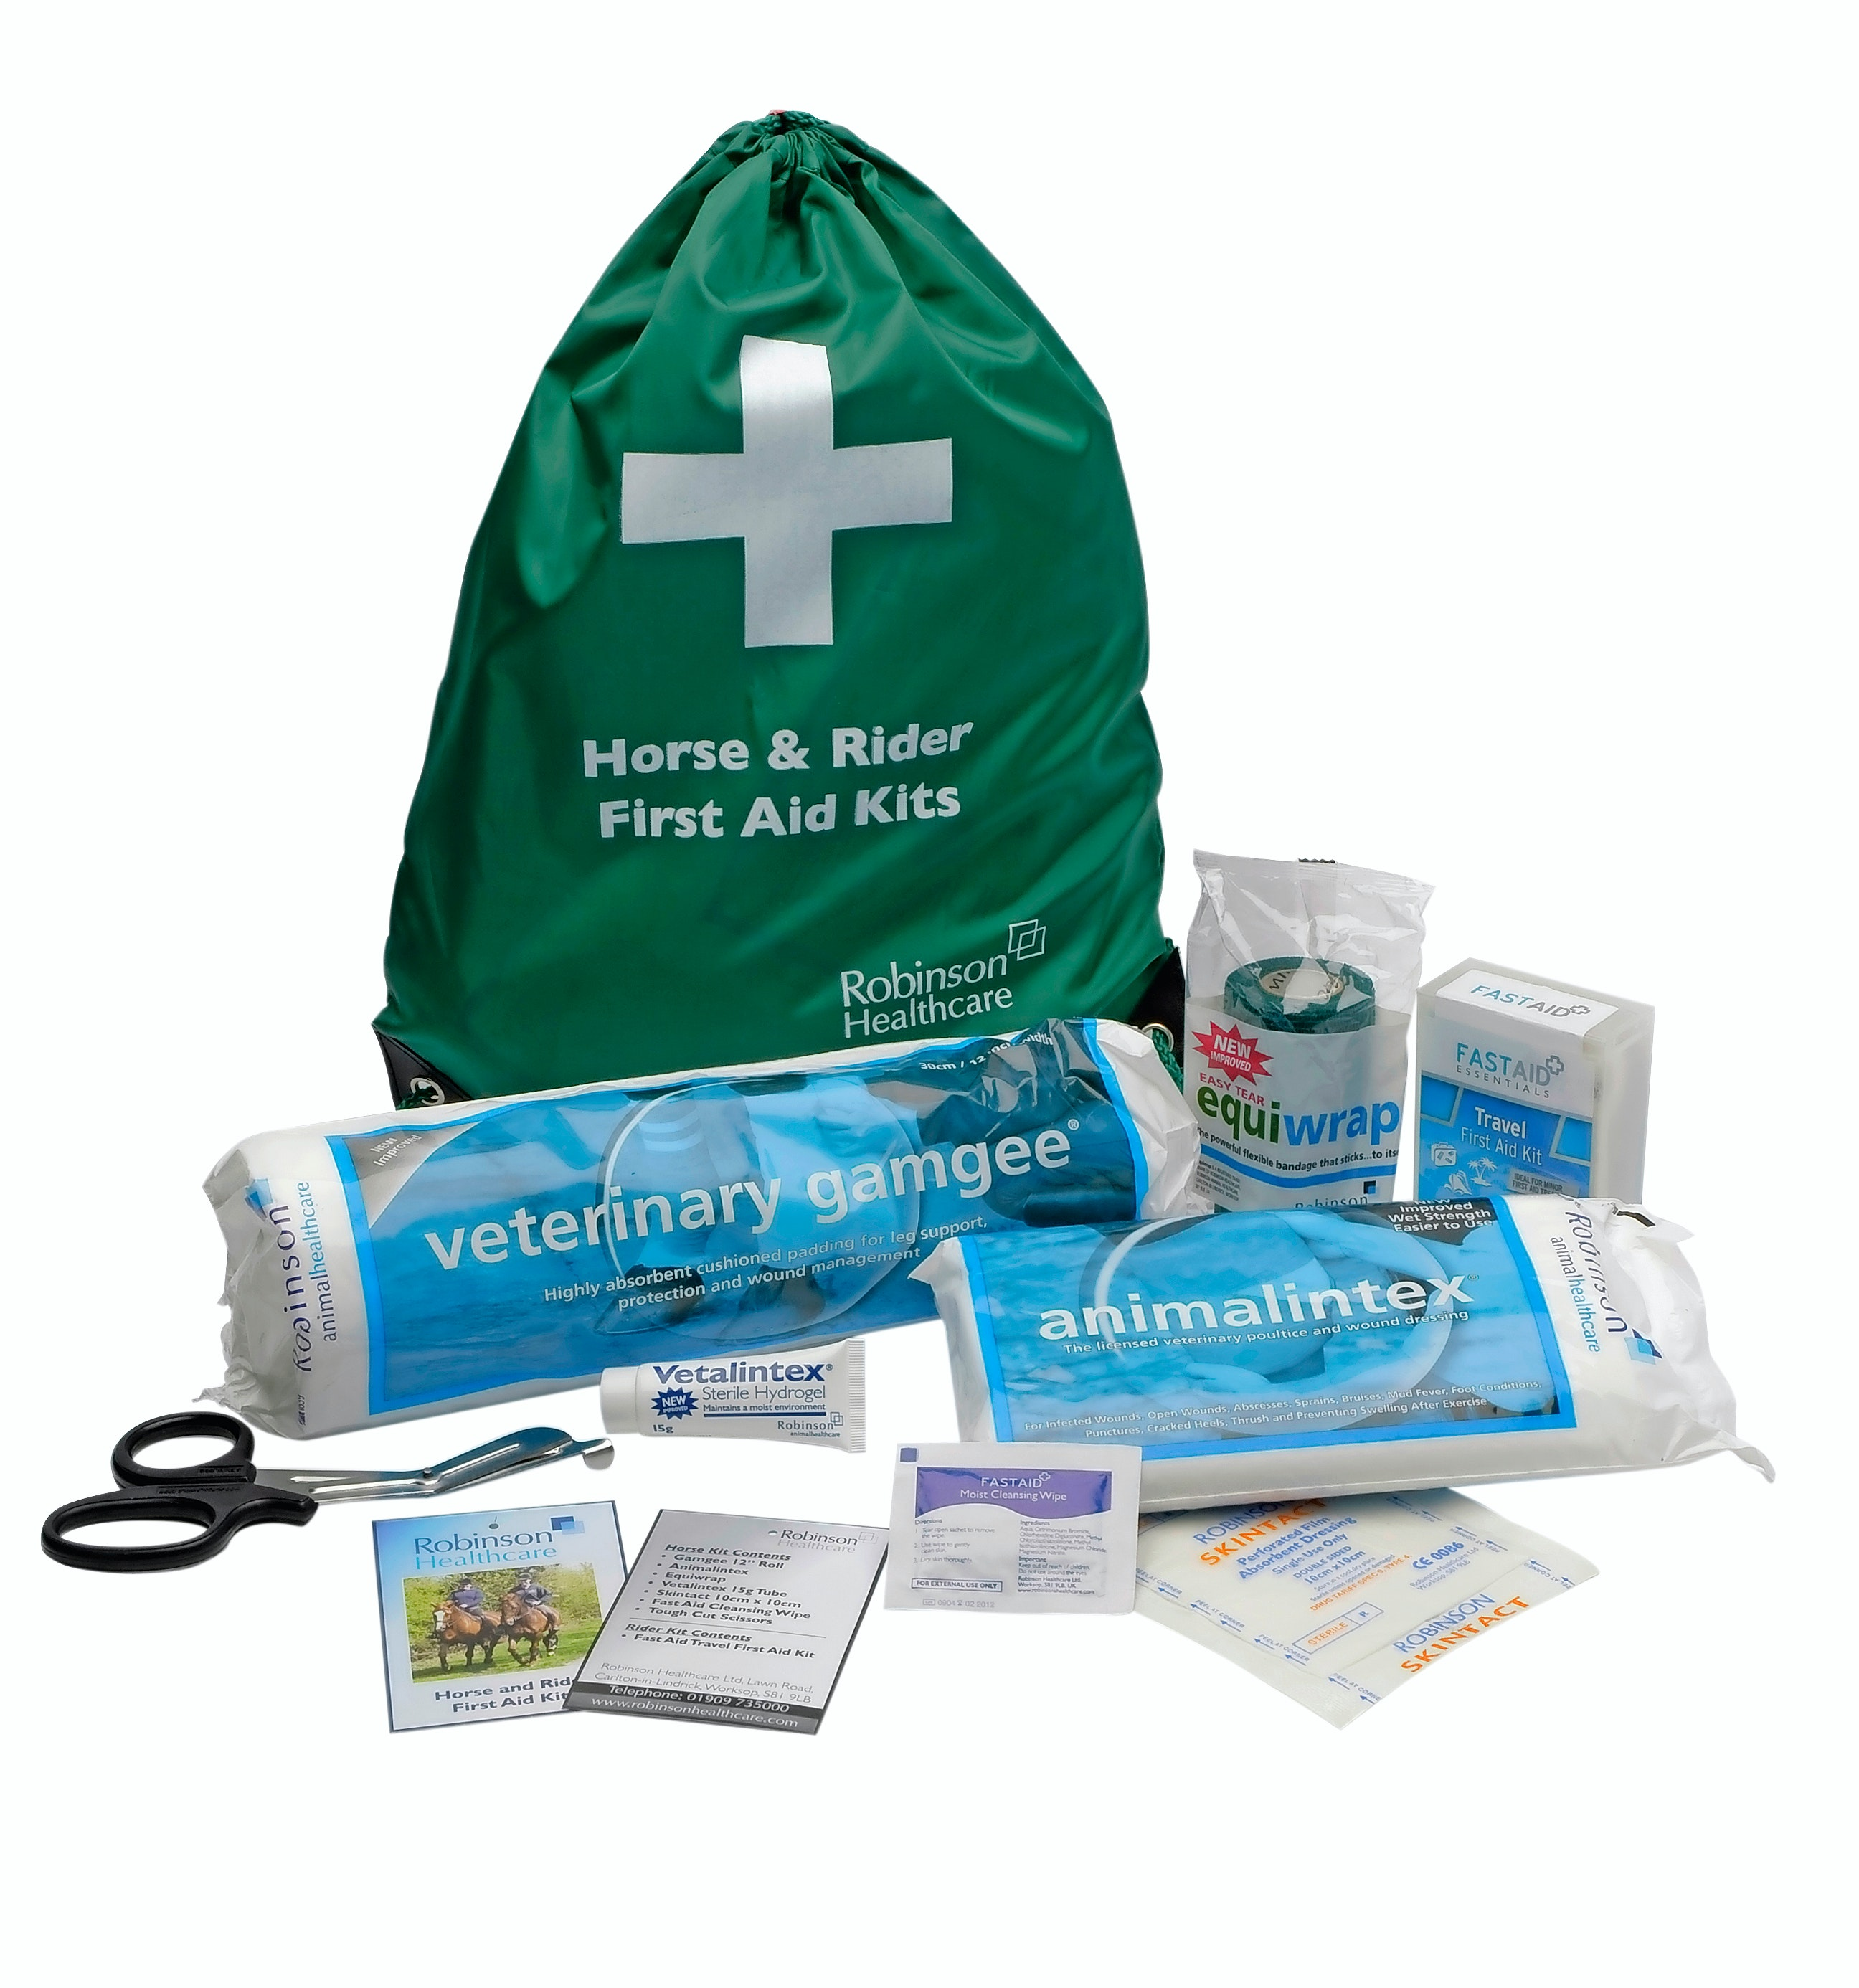 Horse & Rider First aid kit sweepstakes